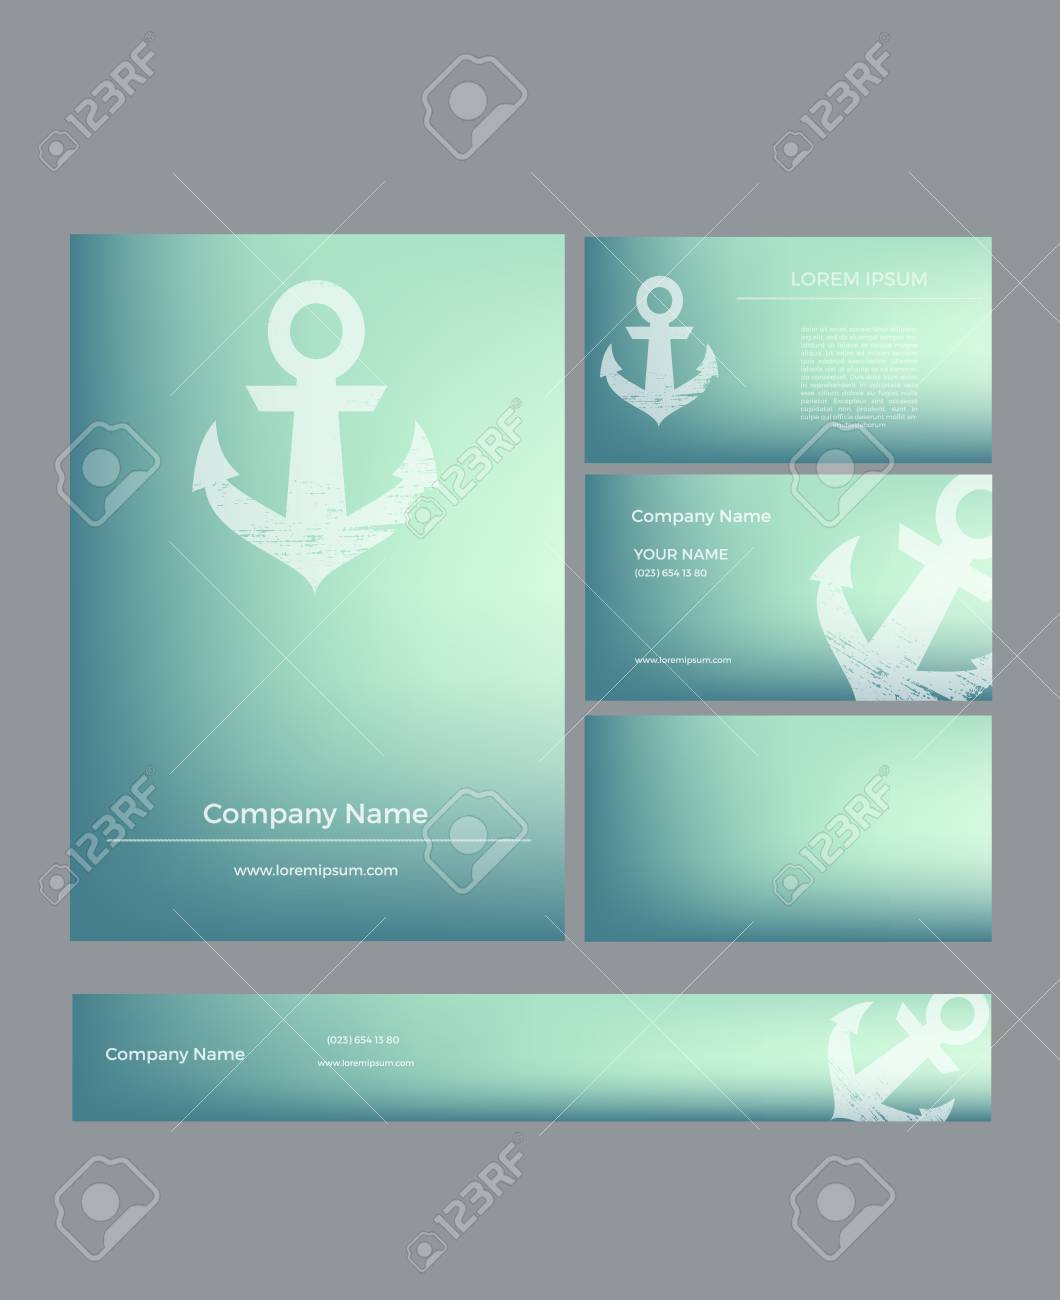 Set Of Business Cards In Marine Style On Blurred Background With ...